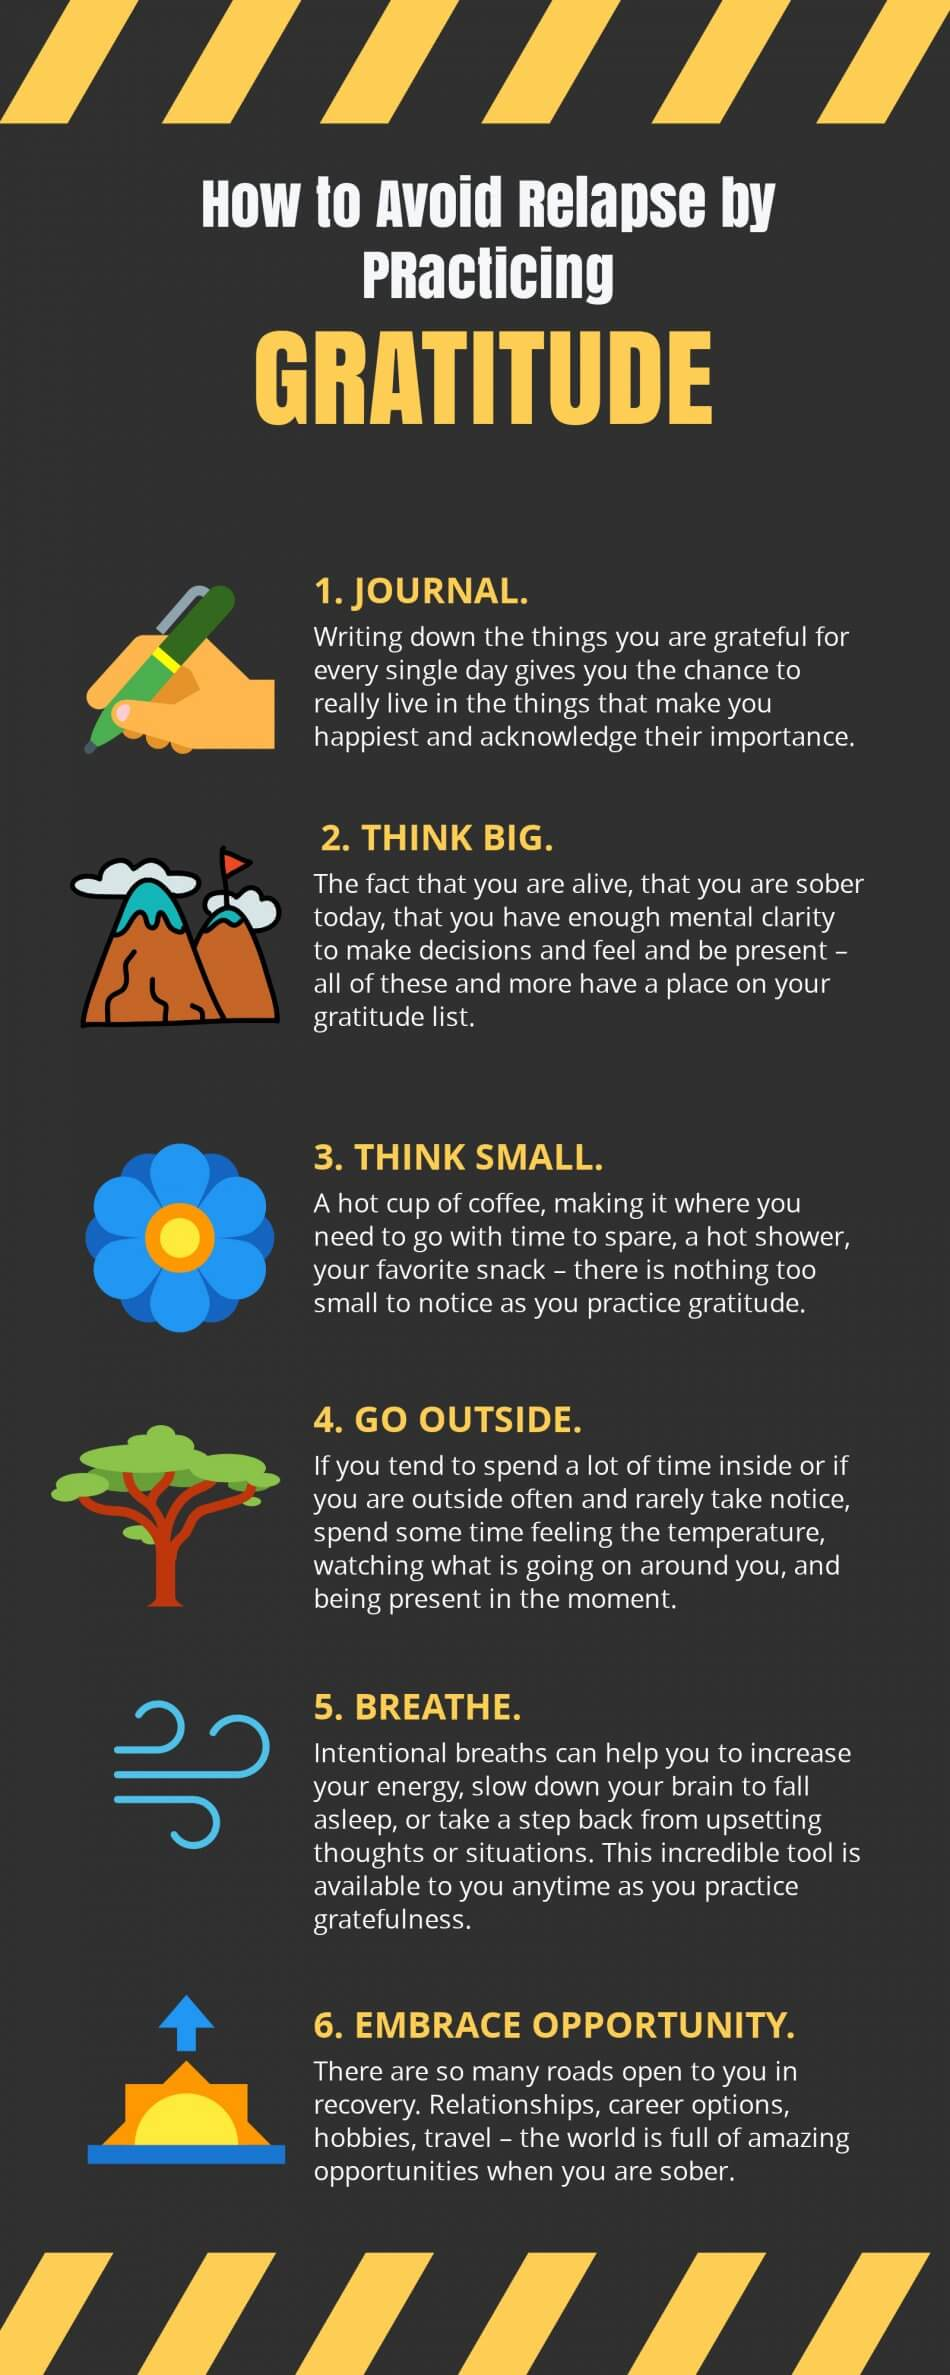 Infographic of six steps on how to avoid relapse by practicing gratitude